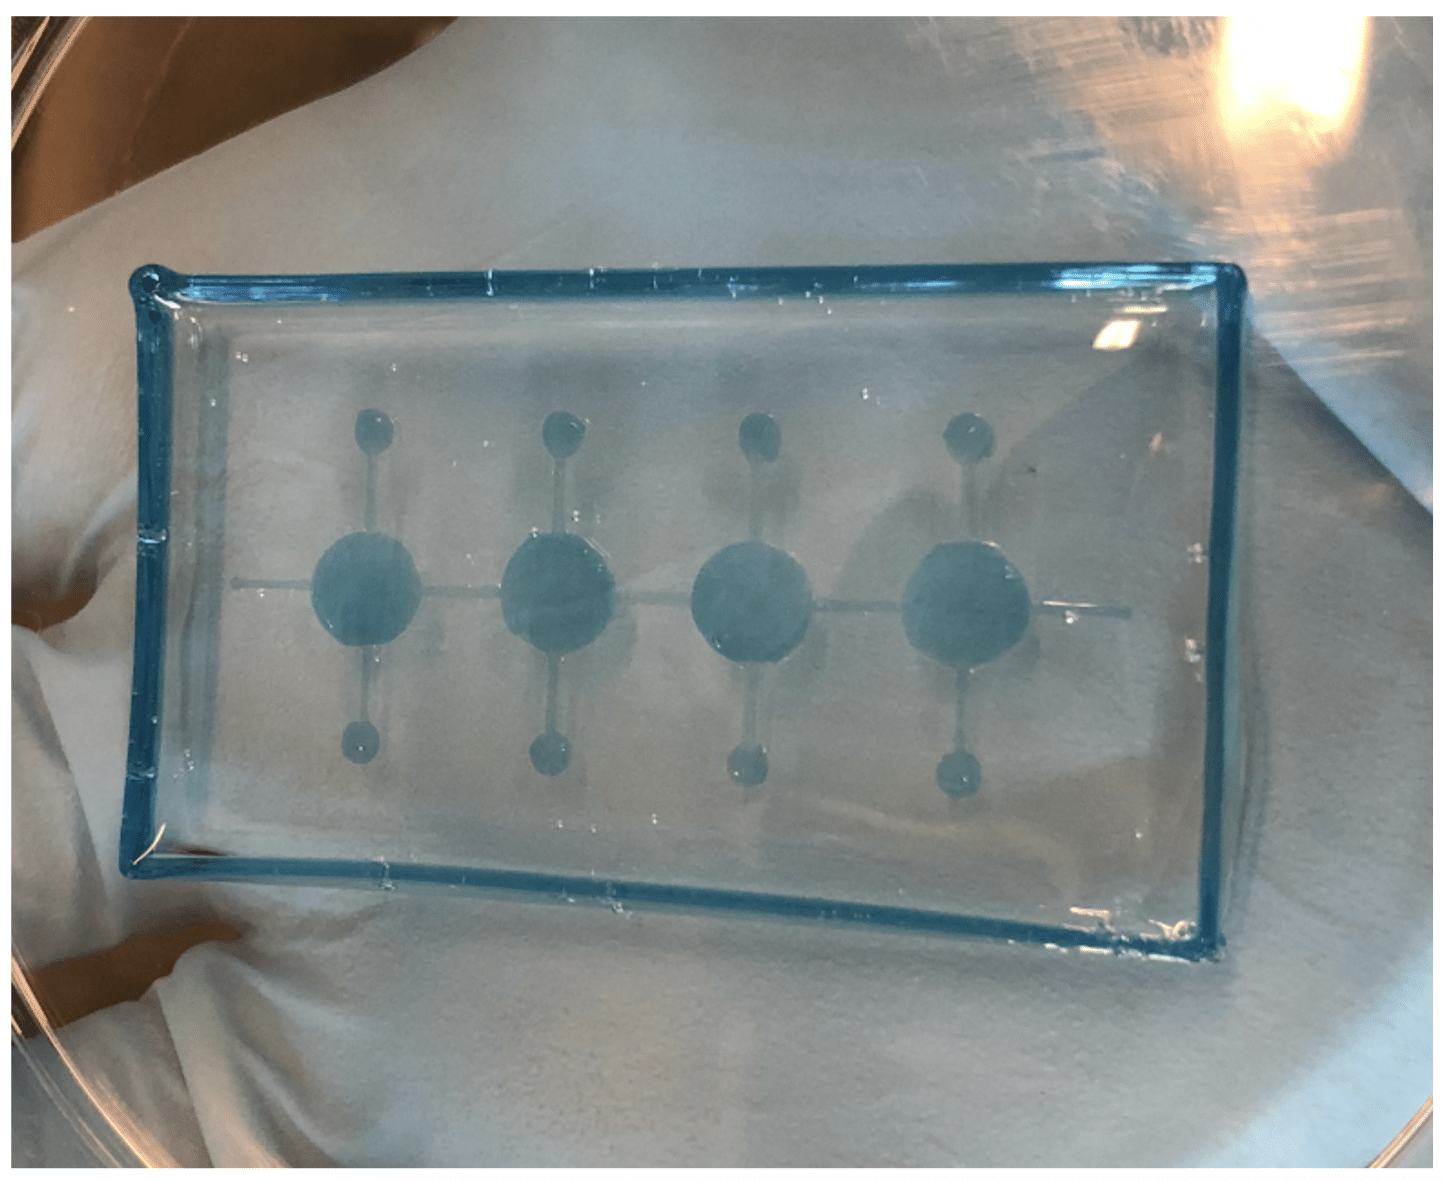 Organ-on-a-chip Bioprinting Using Carbohydrate Glass